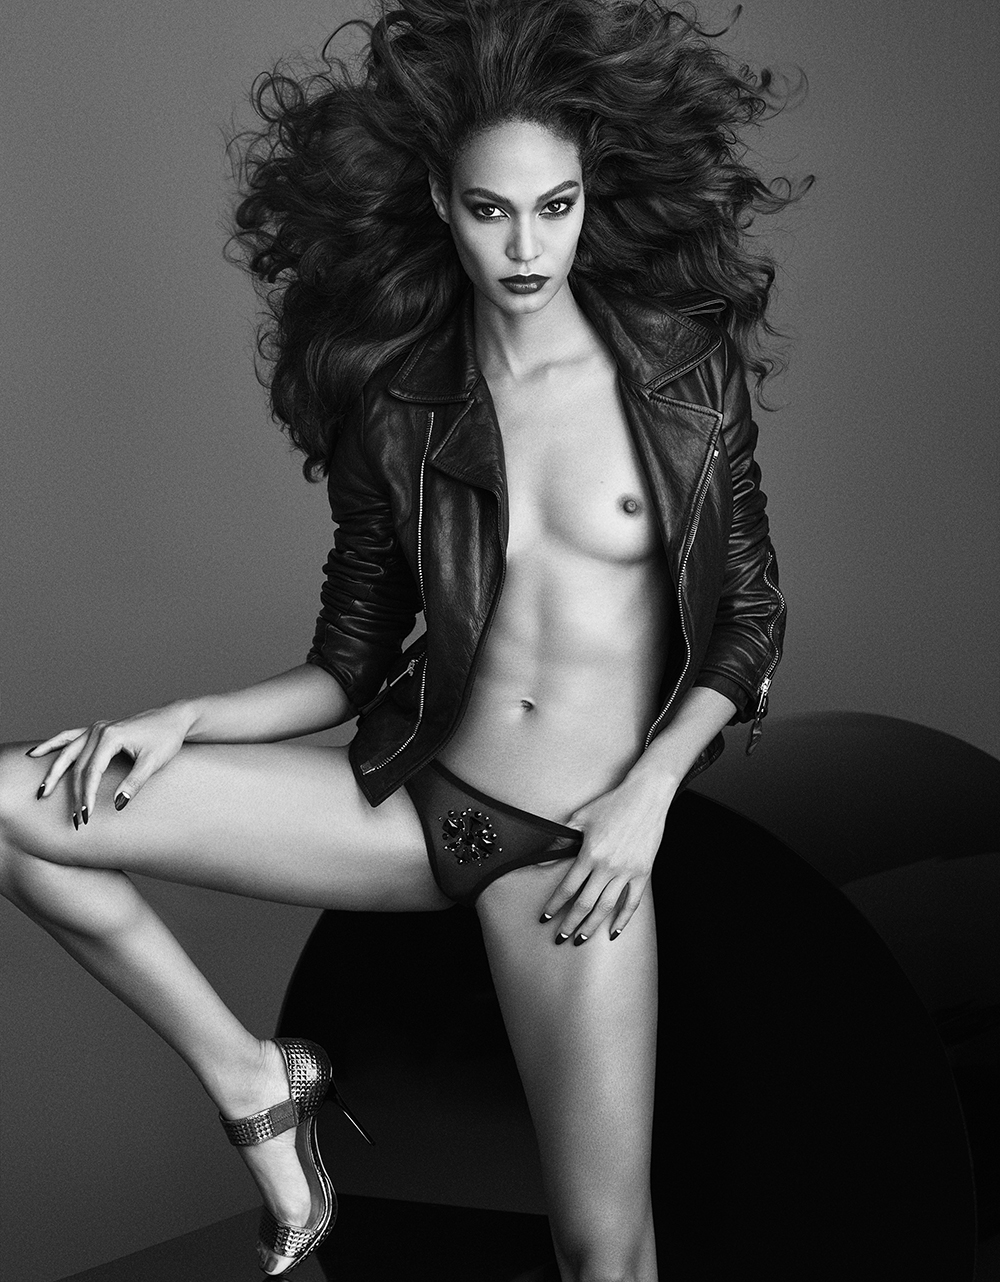 Joan Smalls nude photos _ (6)